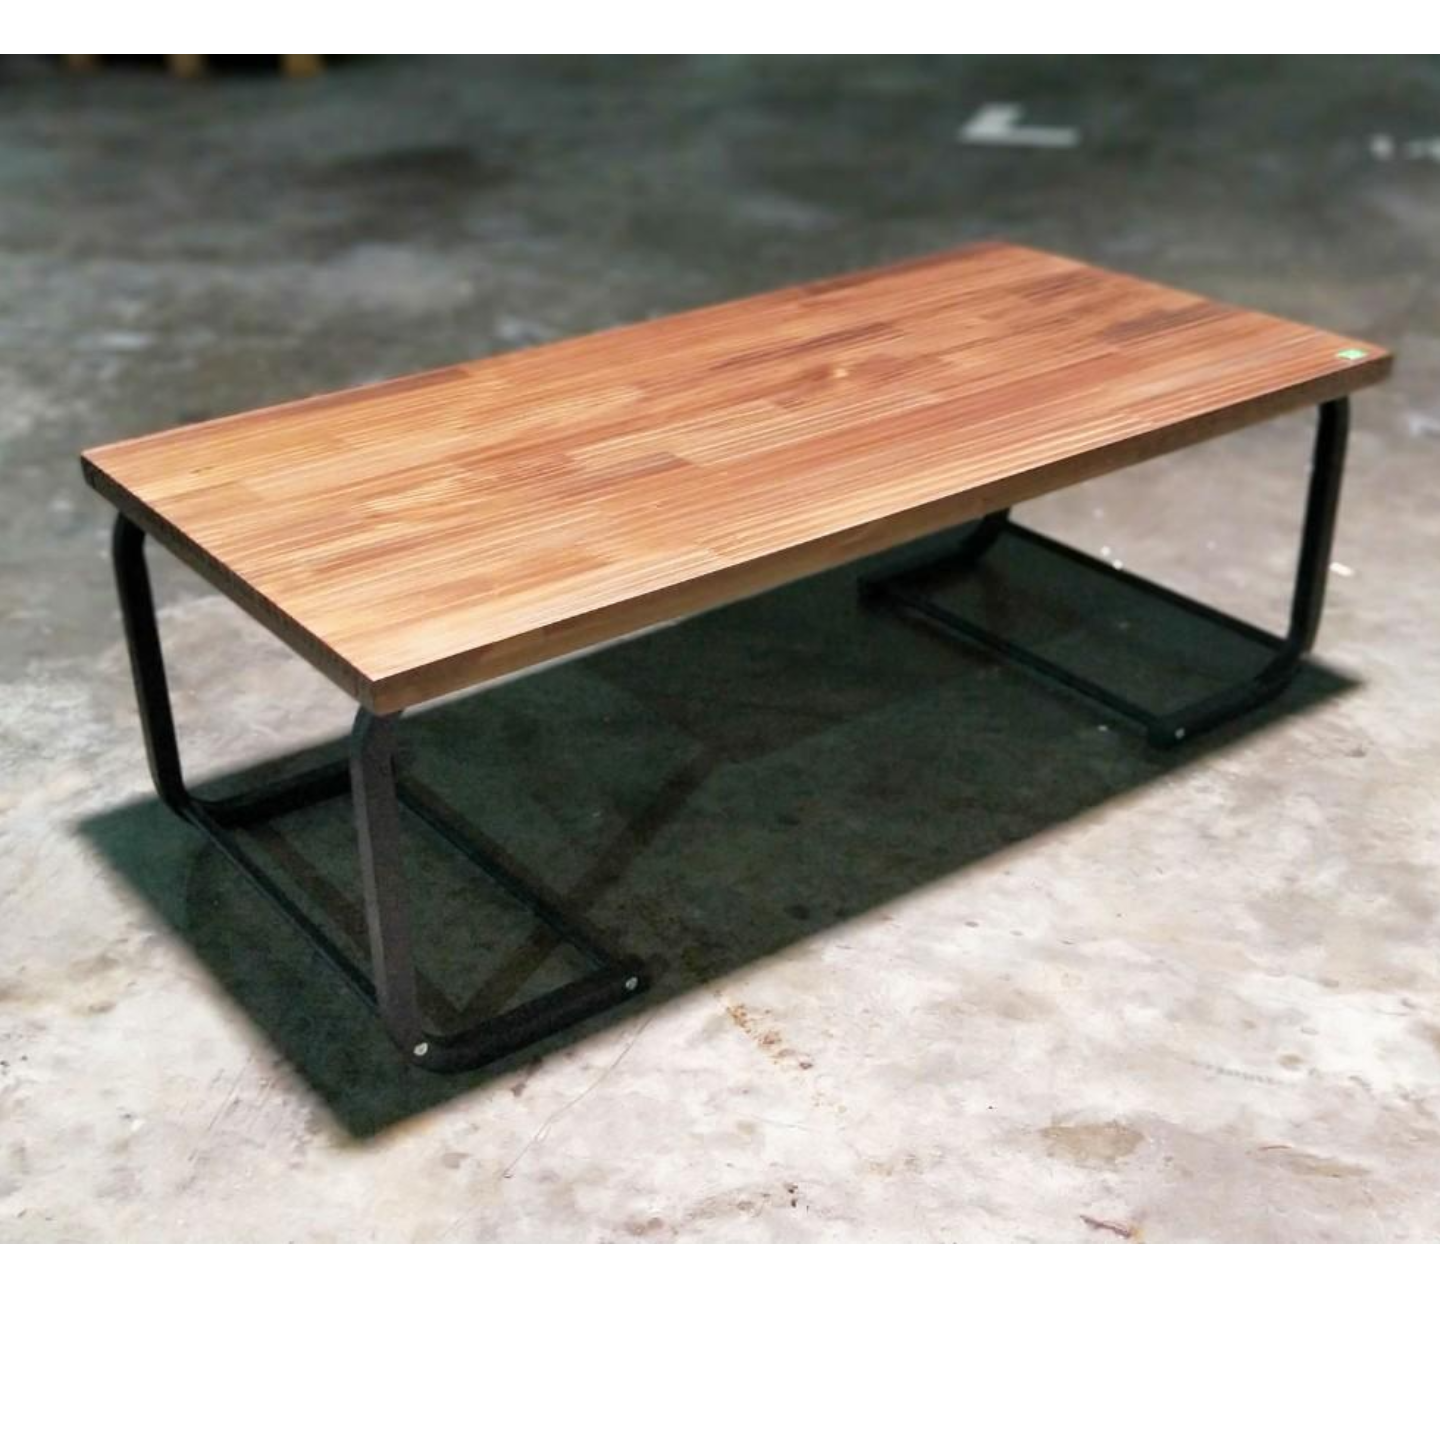 RINEK INDUSTRI Series Raw Wood Coffee Table